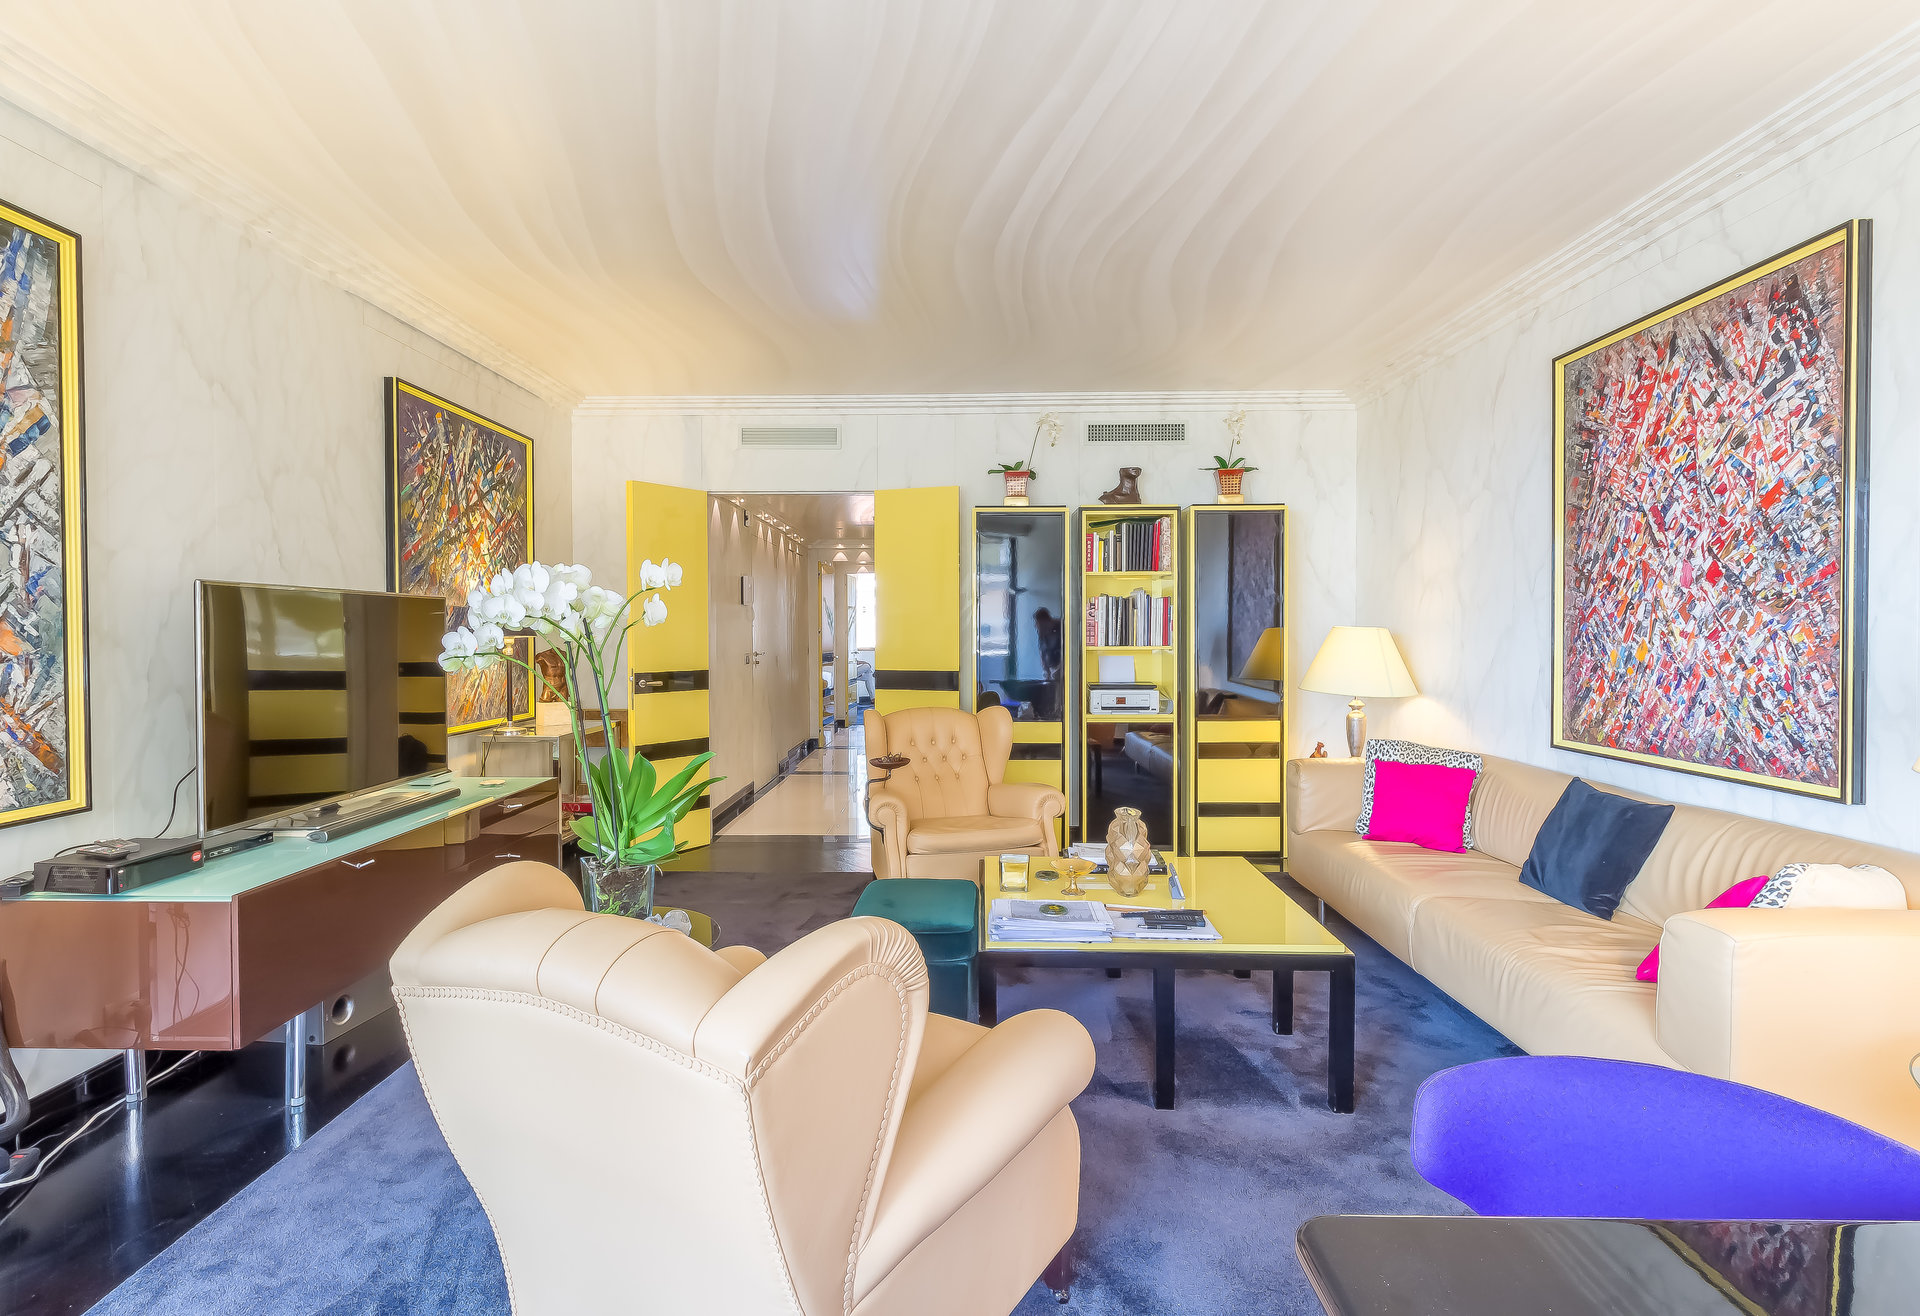 Saint Andre - One bedroom apartment